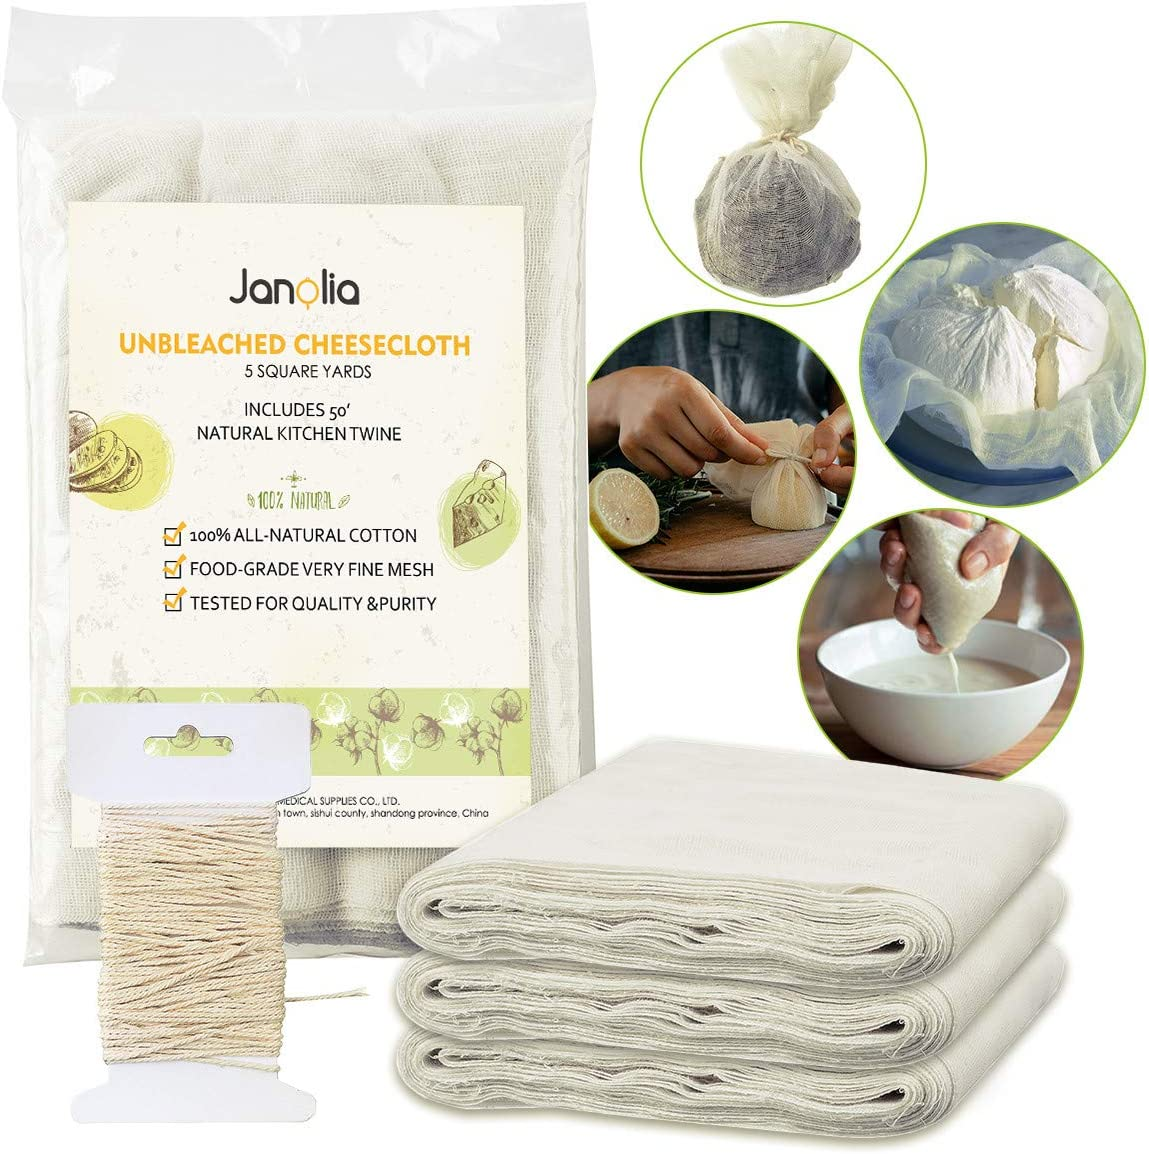 Janolia Cheesecloth, Nut Milk Bag Reusable, 45 Sq. Ft, Grade 50, with 15.2m Twine, Natural Cotton Fabric Filter Cloth, Ultra Fine Mesh Muslin for Steaming Food, Dry Food Storage, Food Straining